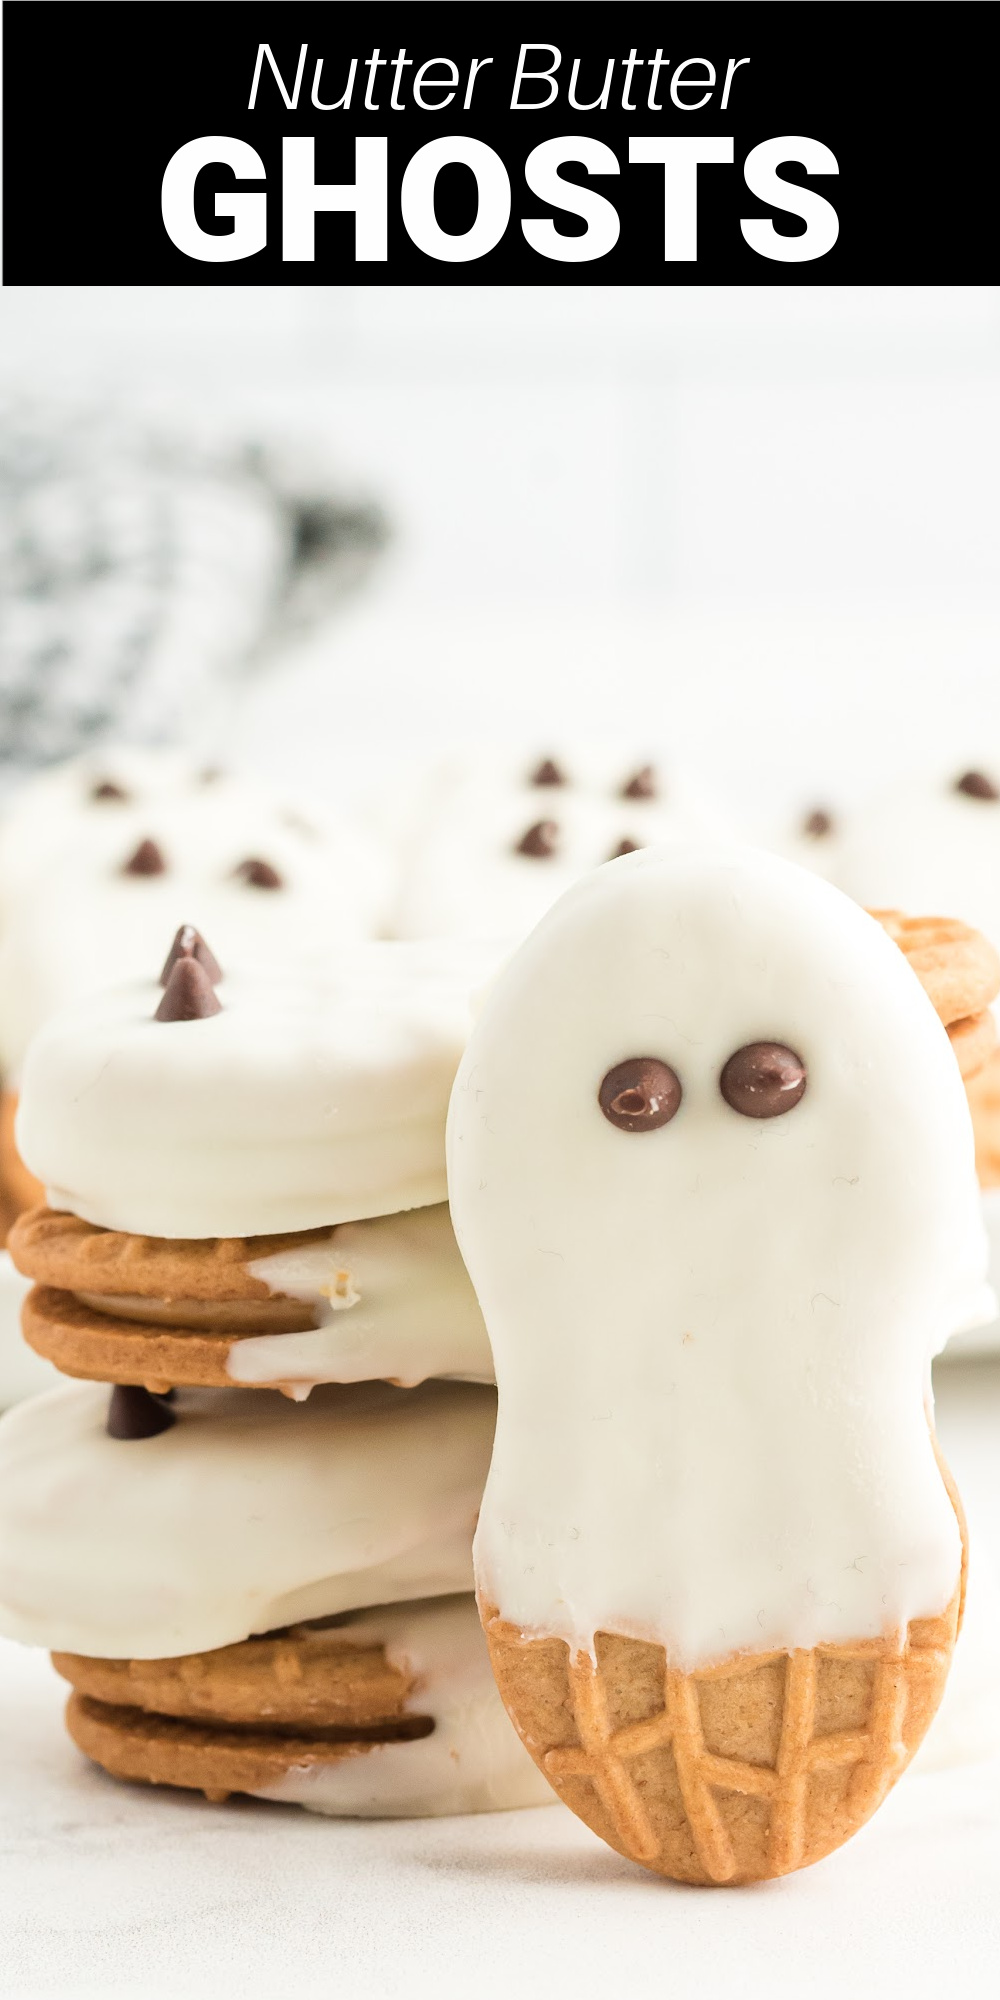 Nutter Butter Ghosts are a simple treat to make with Nutter Butters and chocolate that are perfect for Halloween.